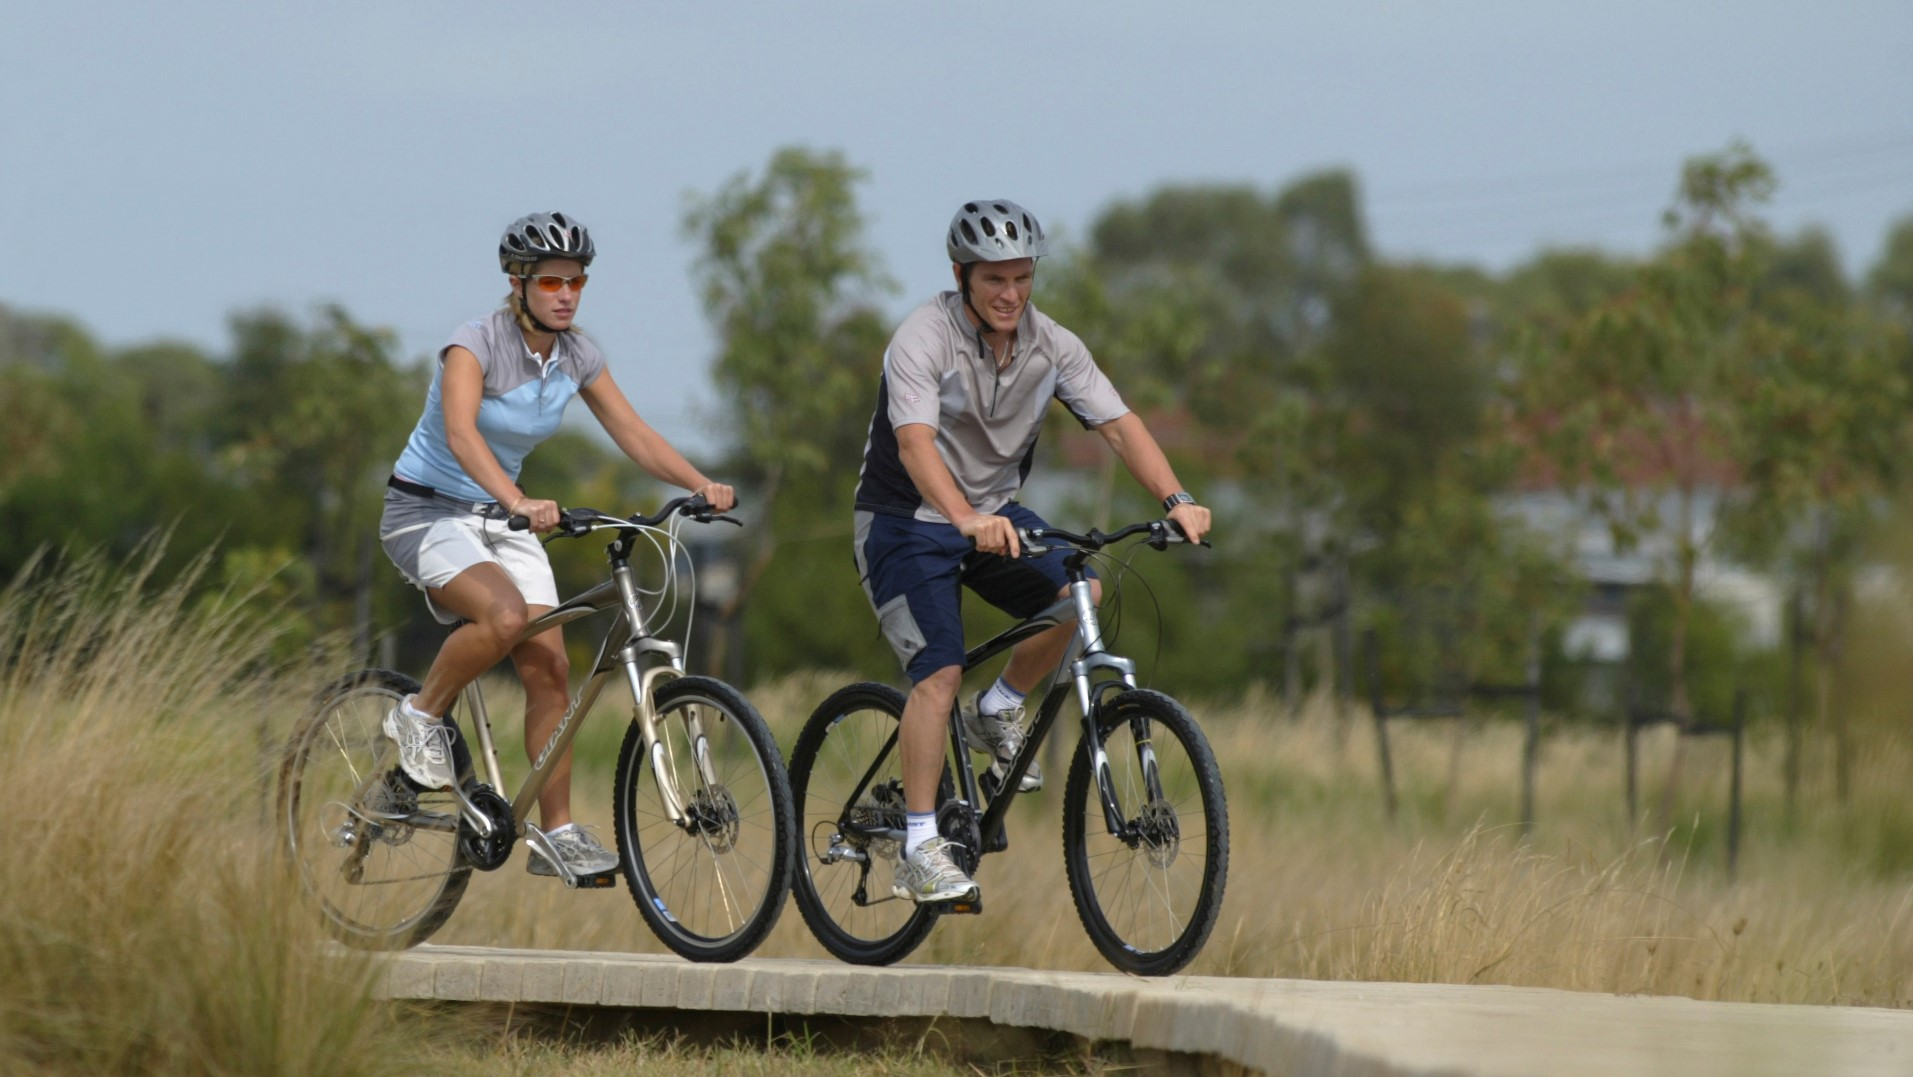 Bike riding in Port Macquarie